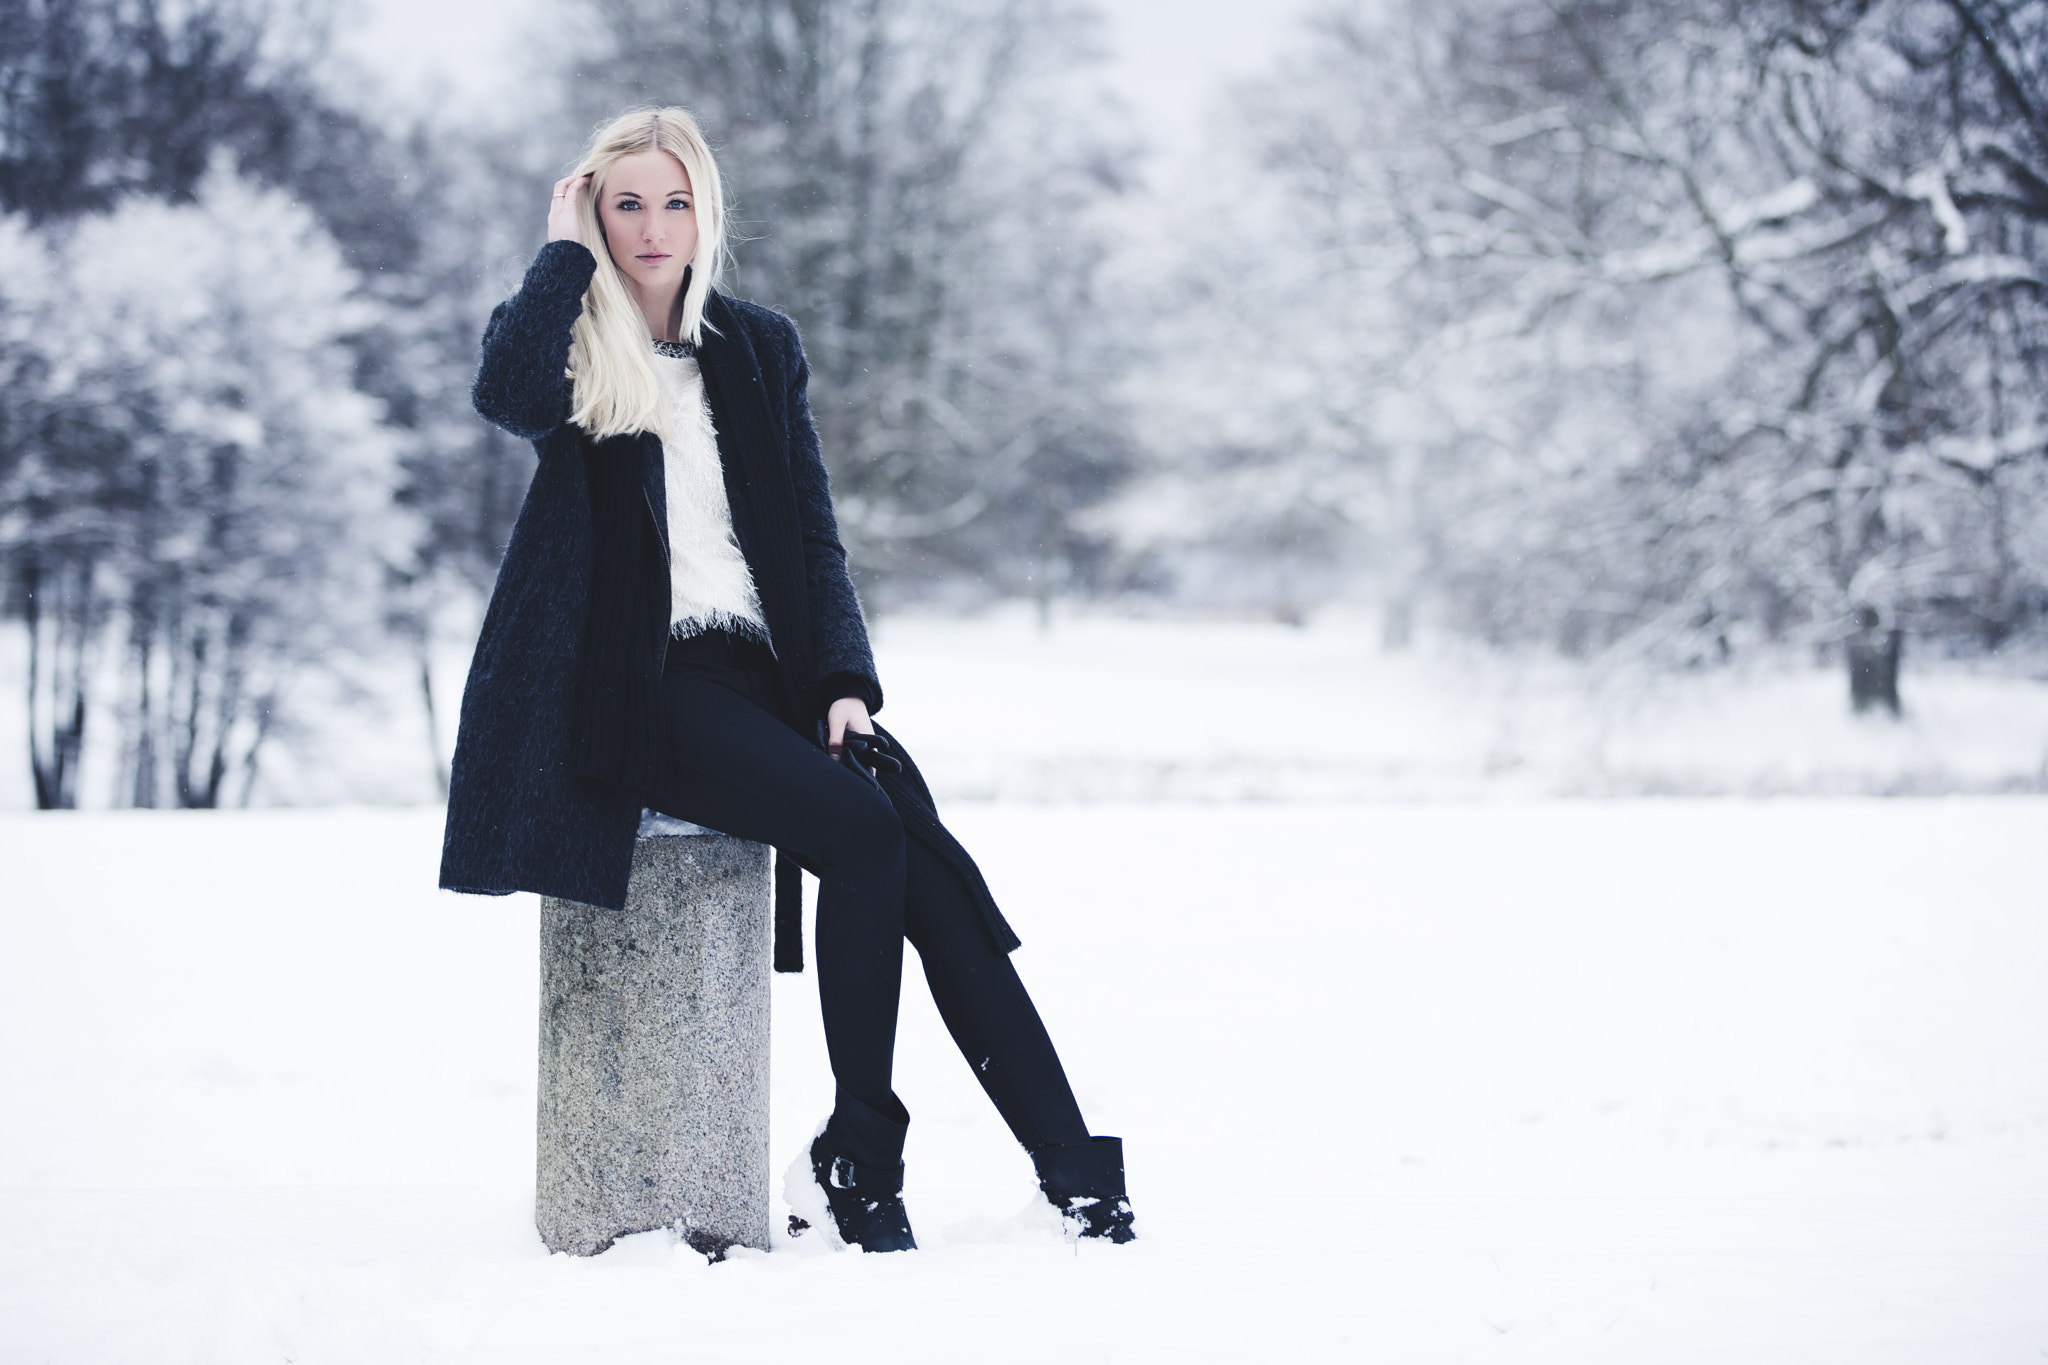 Photograph waiting in the cold by Martin Jørgensen on 500px